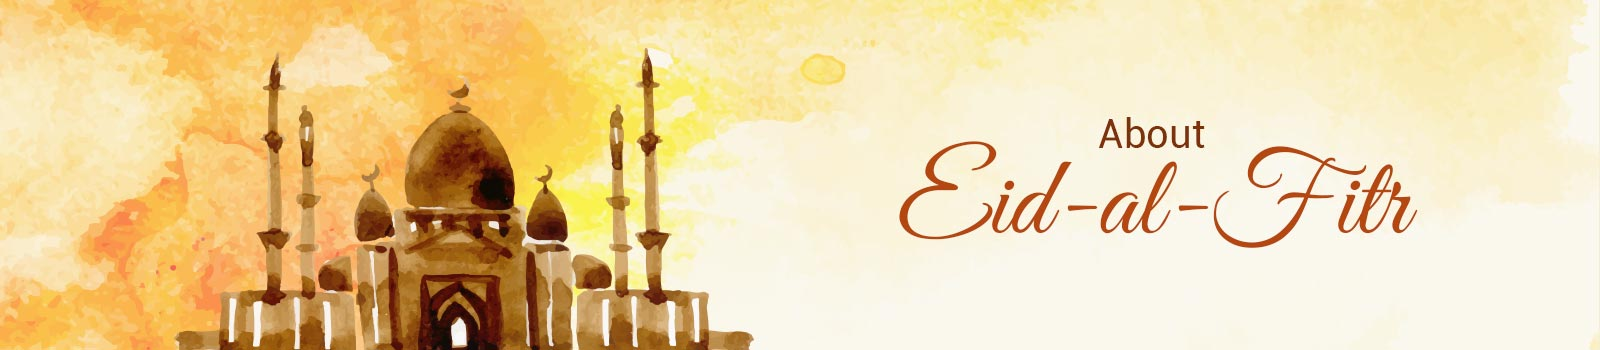 eid celebration and poors What is eid al-adha in the islamic lunar calendar, the muslims have two major eids: ʿīd al-aḍḥā festival of the sacrifice, and ʿīd al-fitr to celebrate.